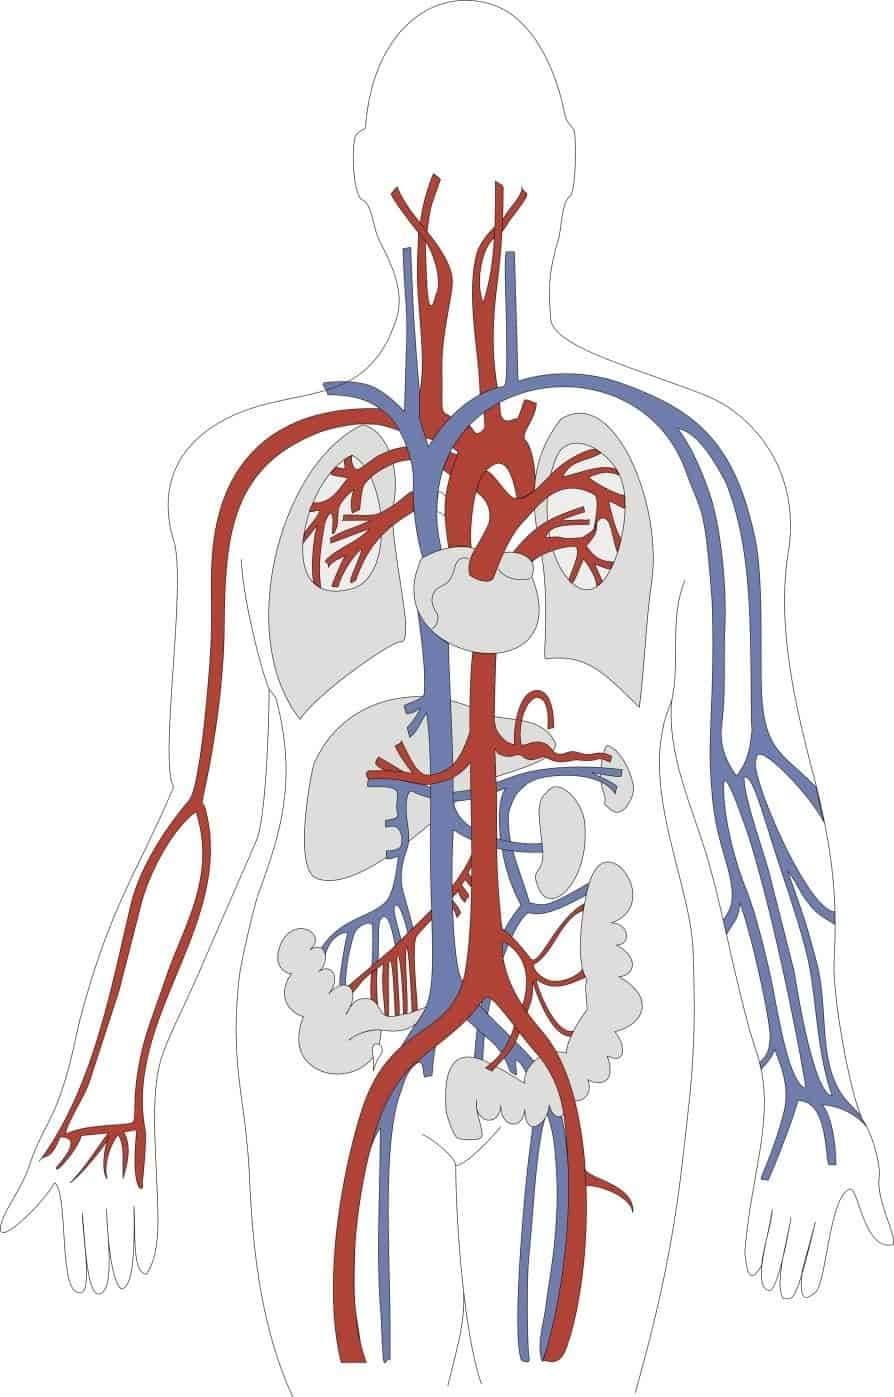 Location Of Heart In Human Body in addition Cardiovascular Tech Salary also Hypertension likewise The Best 8 Fruits For Better Health together with Afib heart conduction system. on blood vascular system